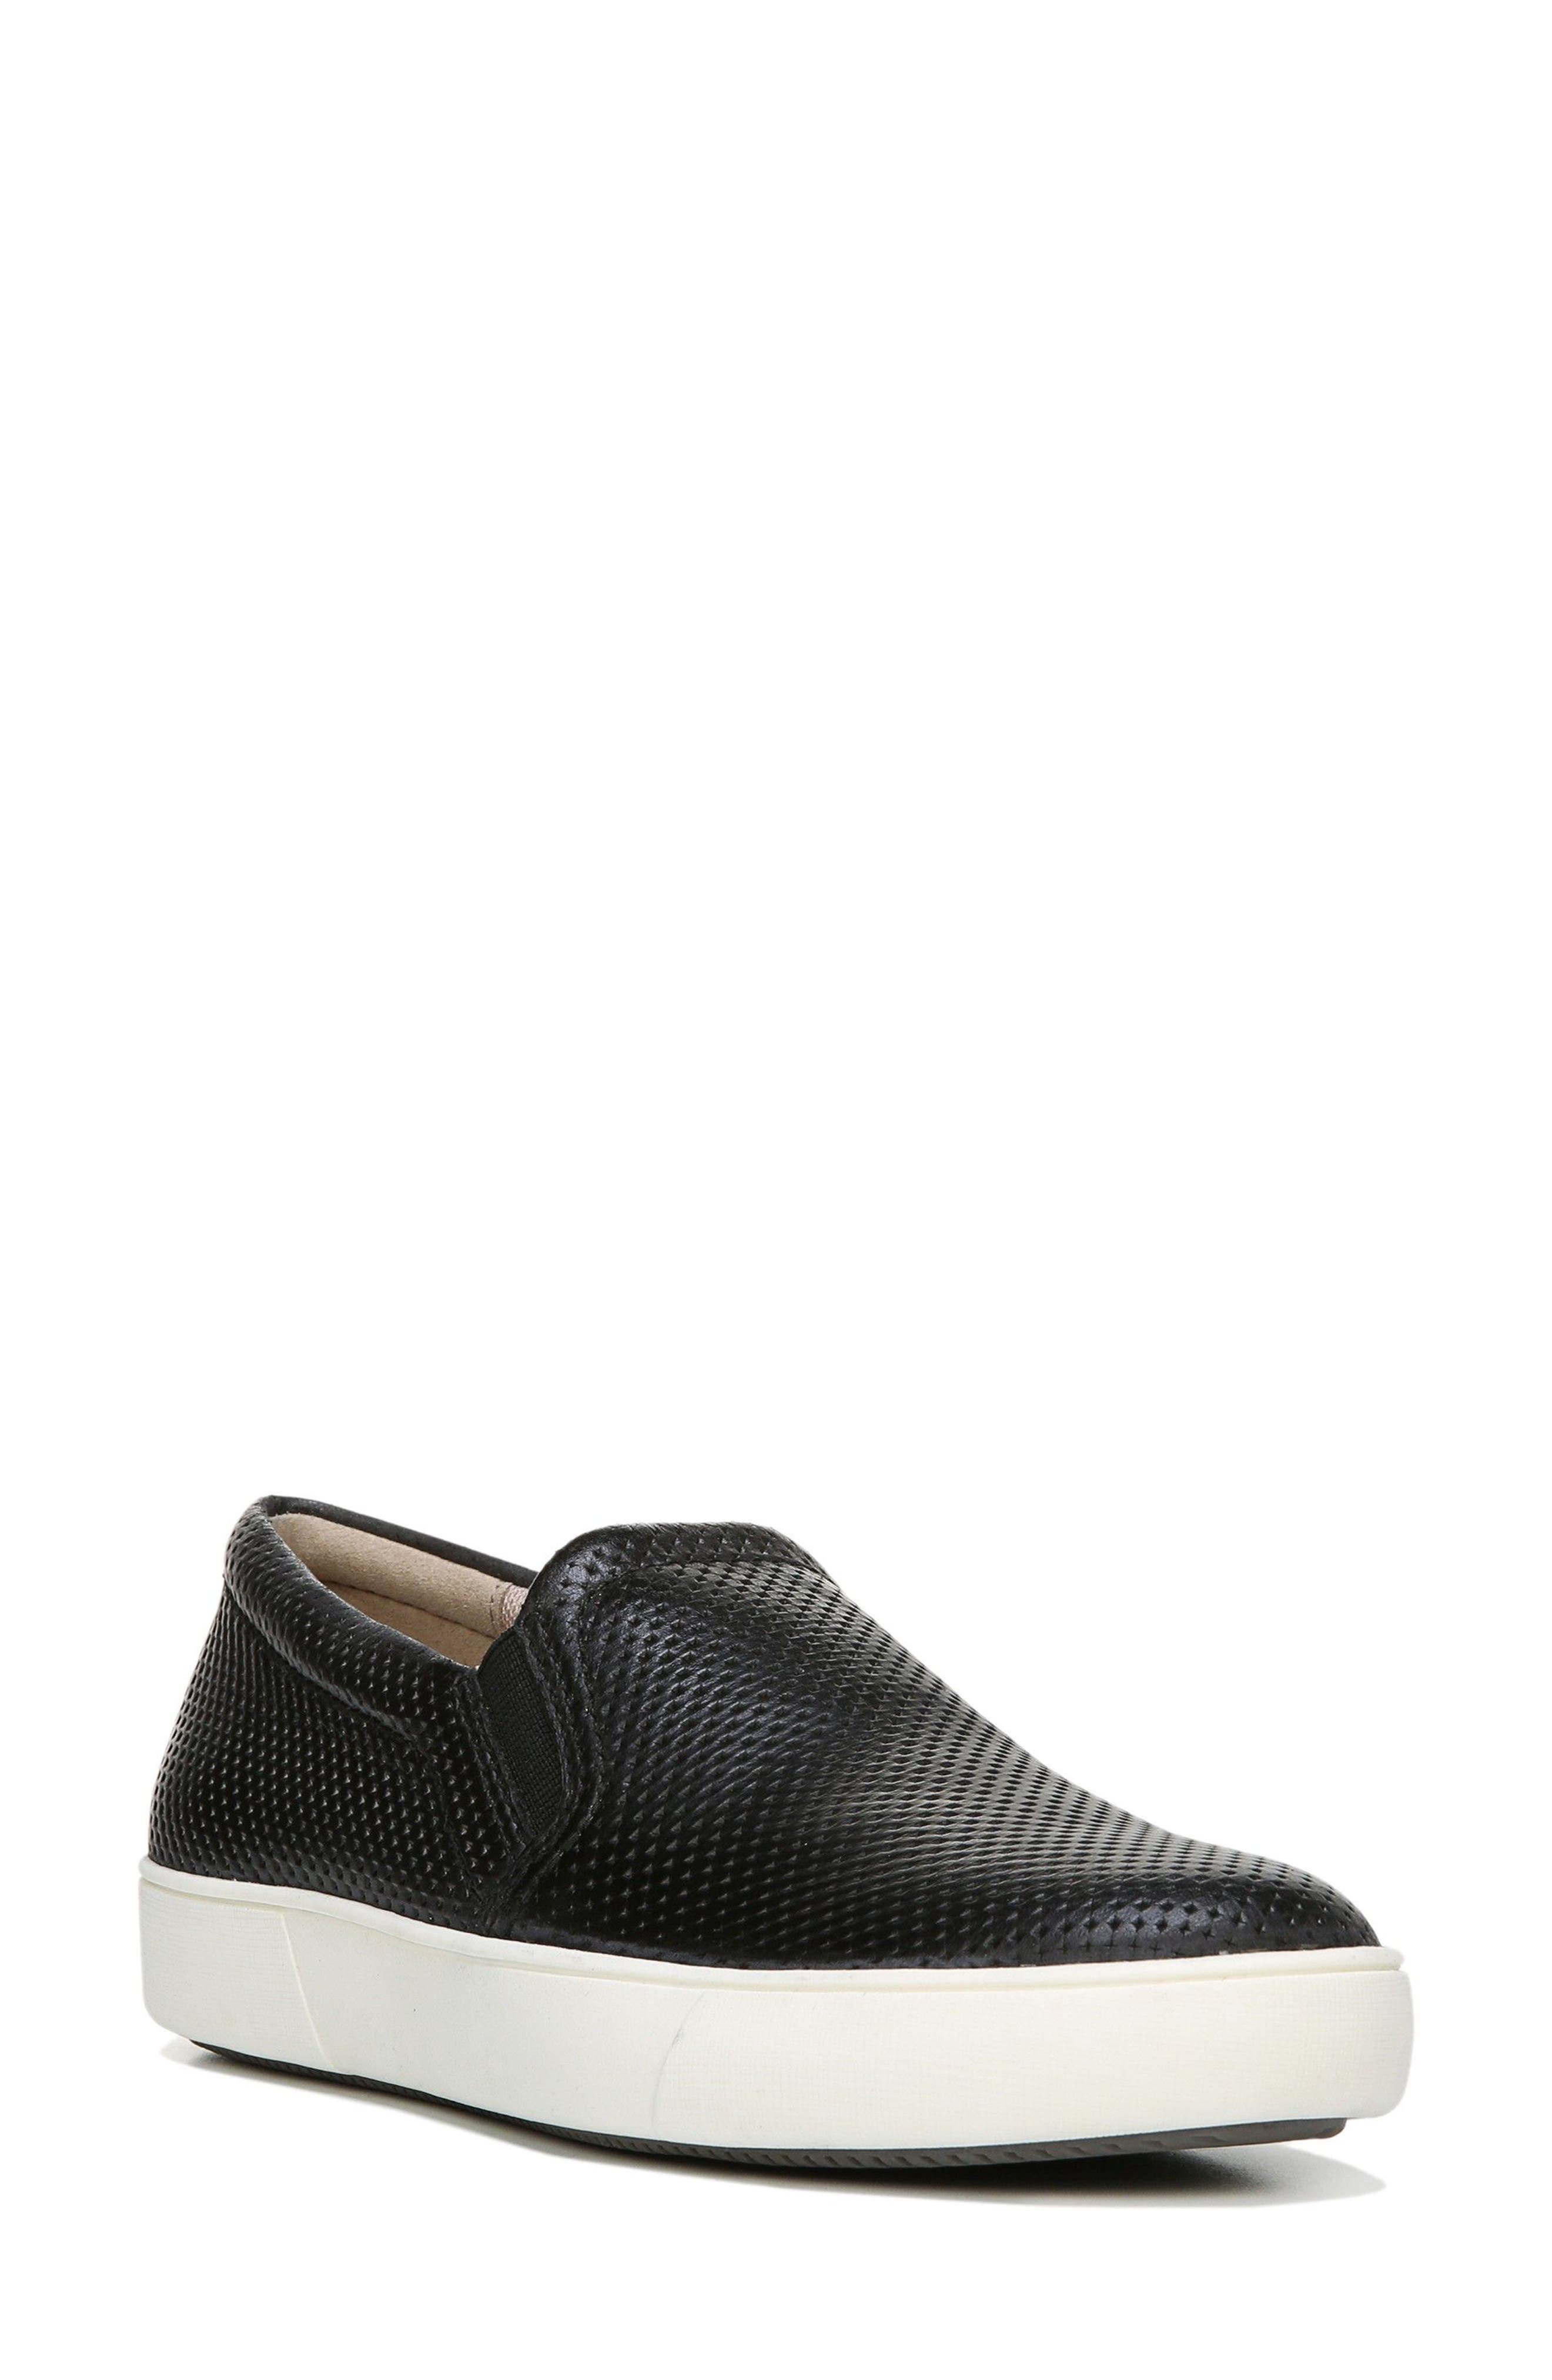 Marianne Sneaker,                             Main thumbnail 1, color,                             BLACK LEATHER